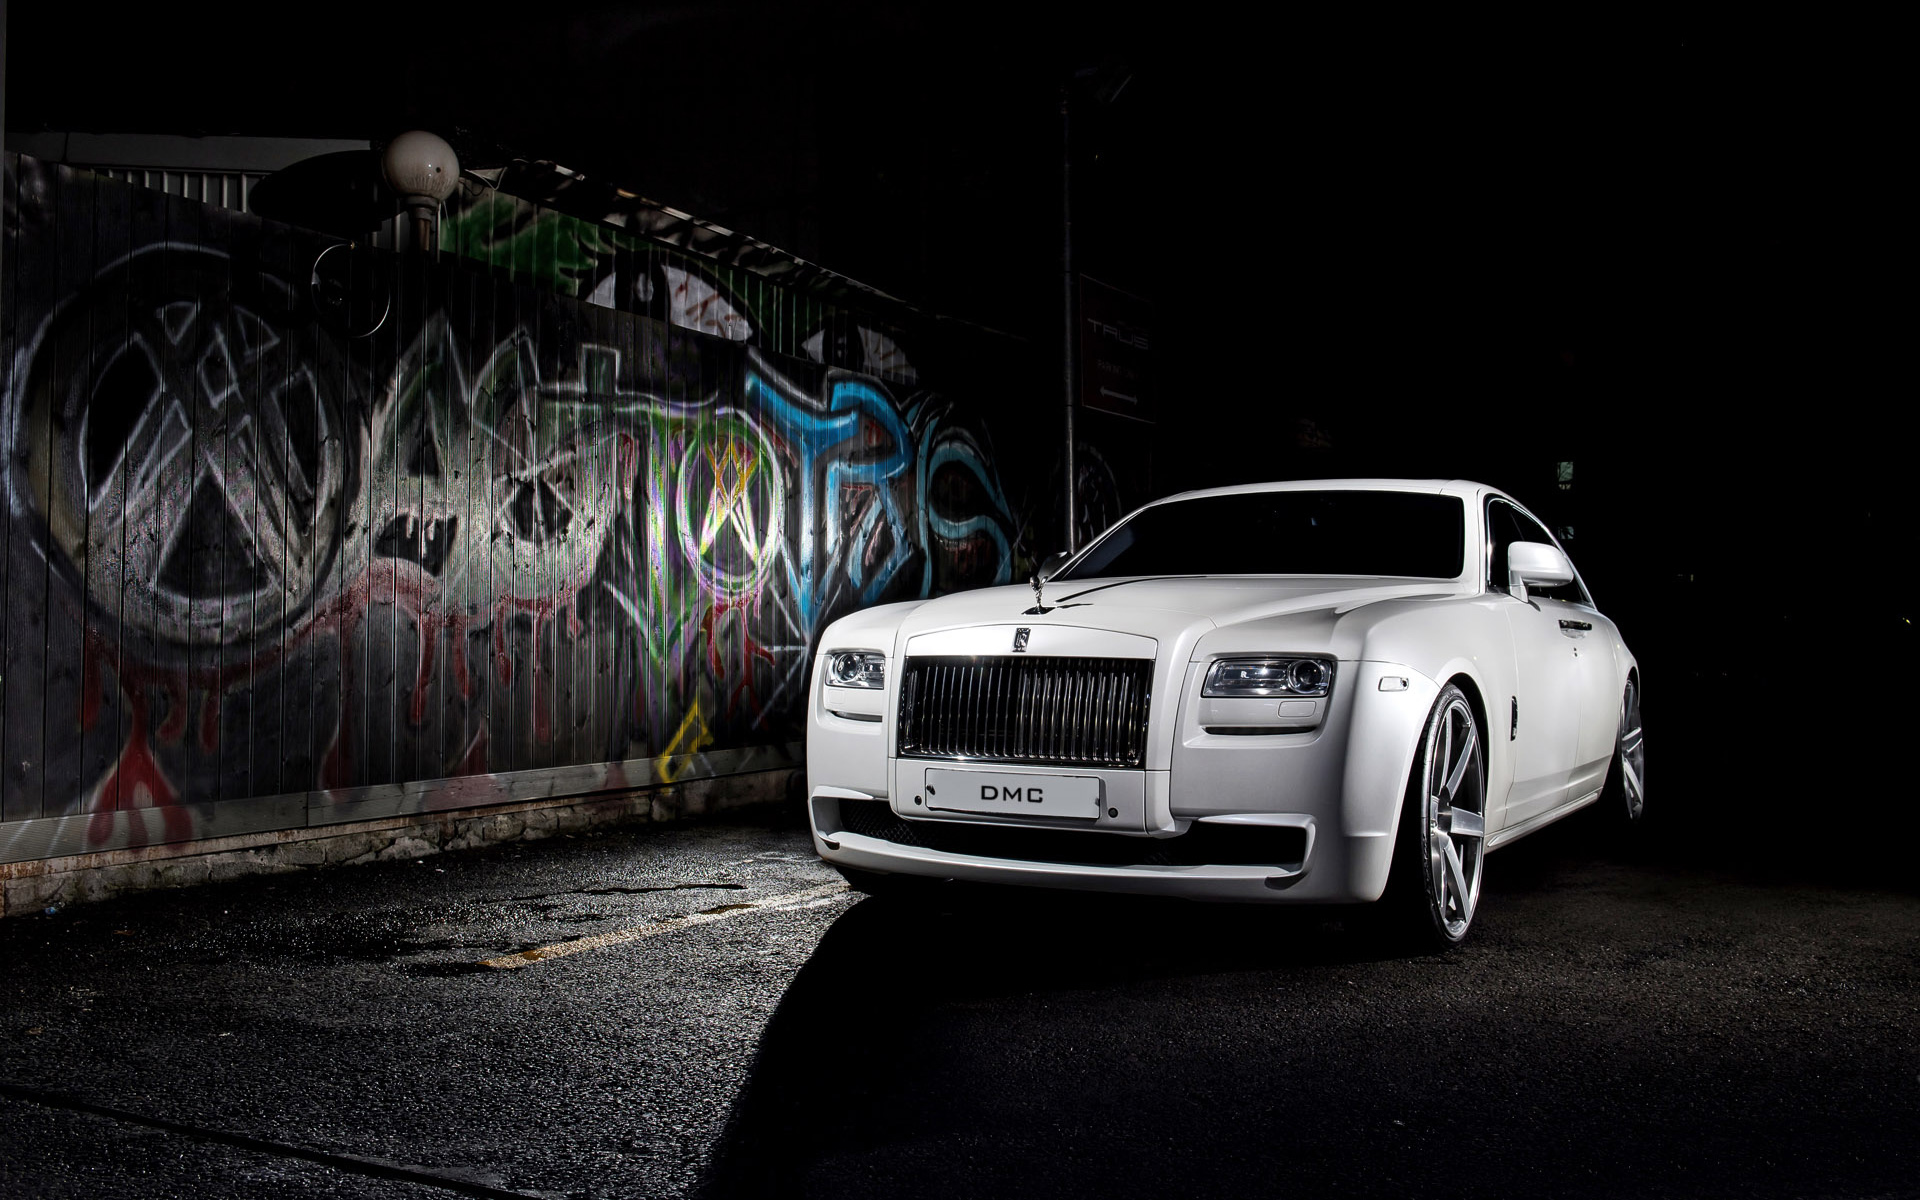 2016 dmc rolls royce ghost saranghae 2 wallpaper | hd car wallpapers